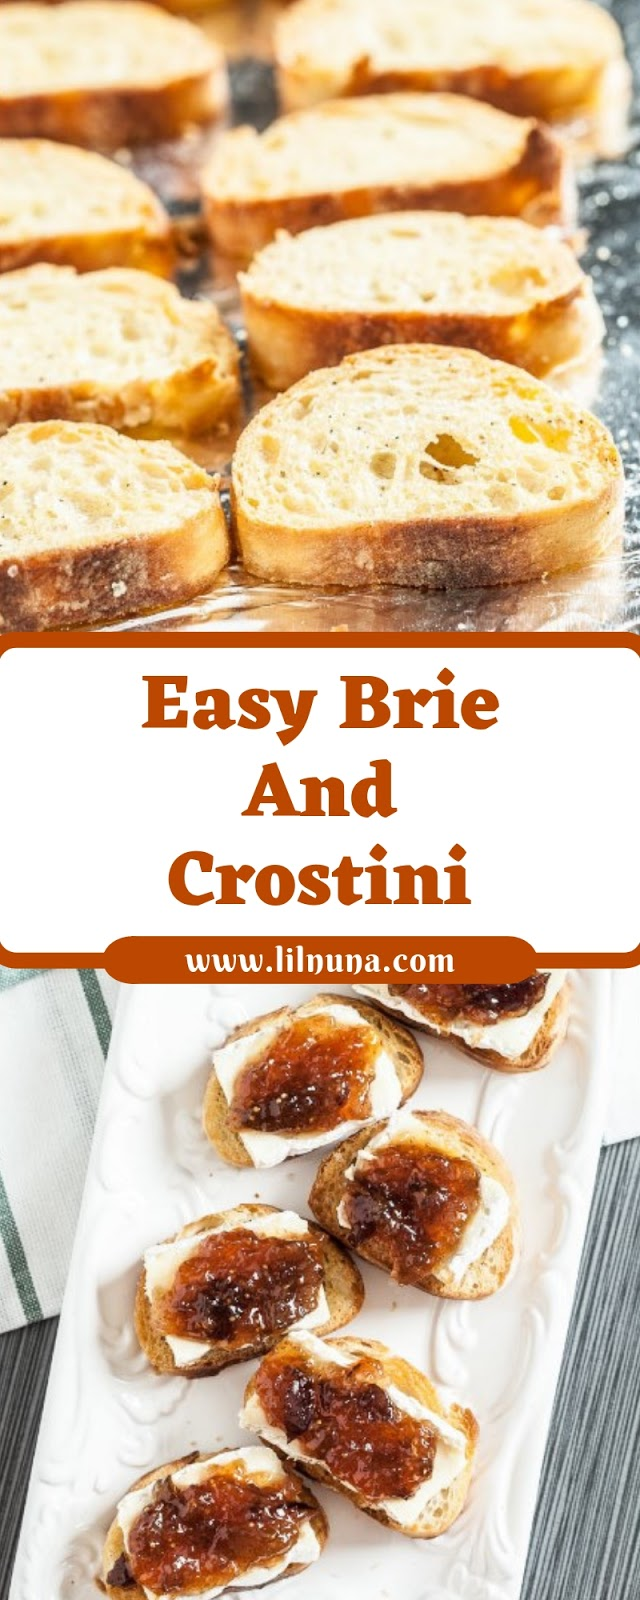 Easy Brie And Crostini